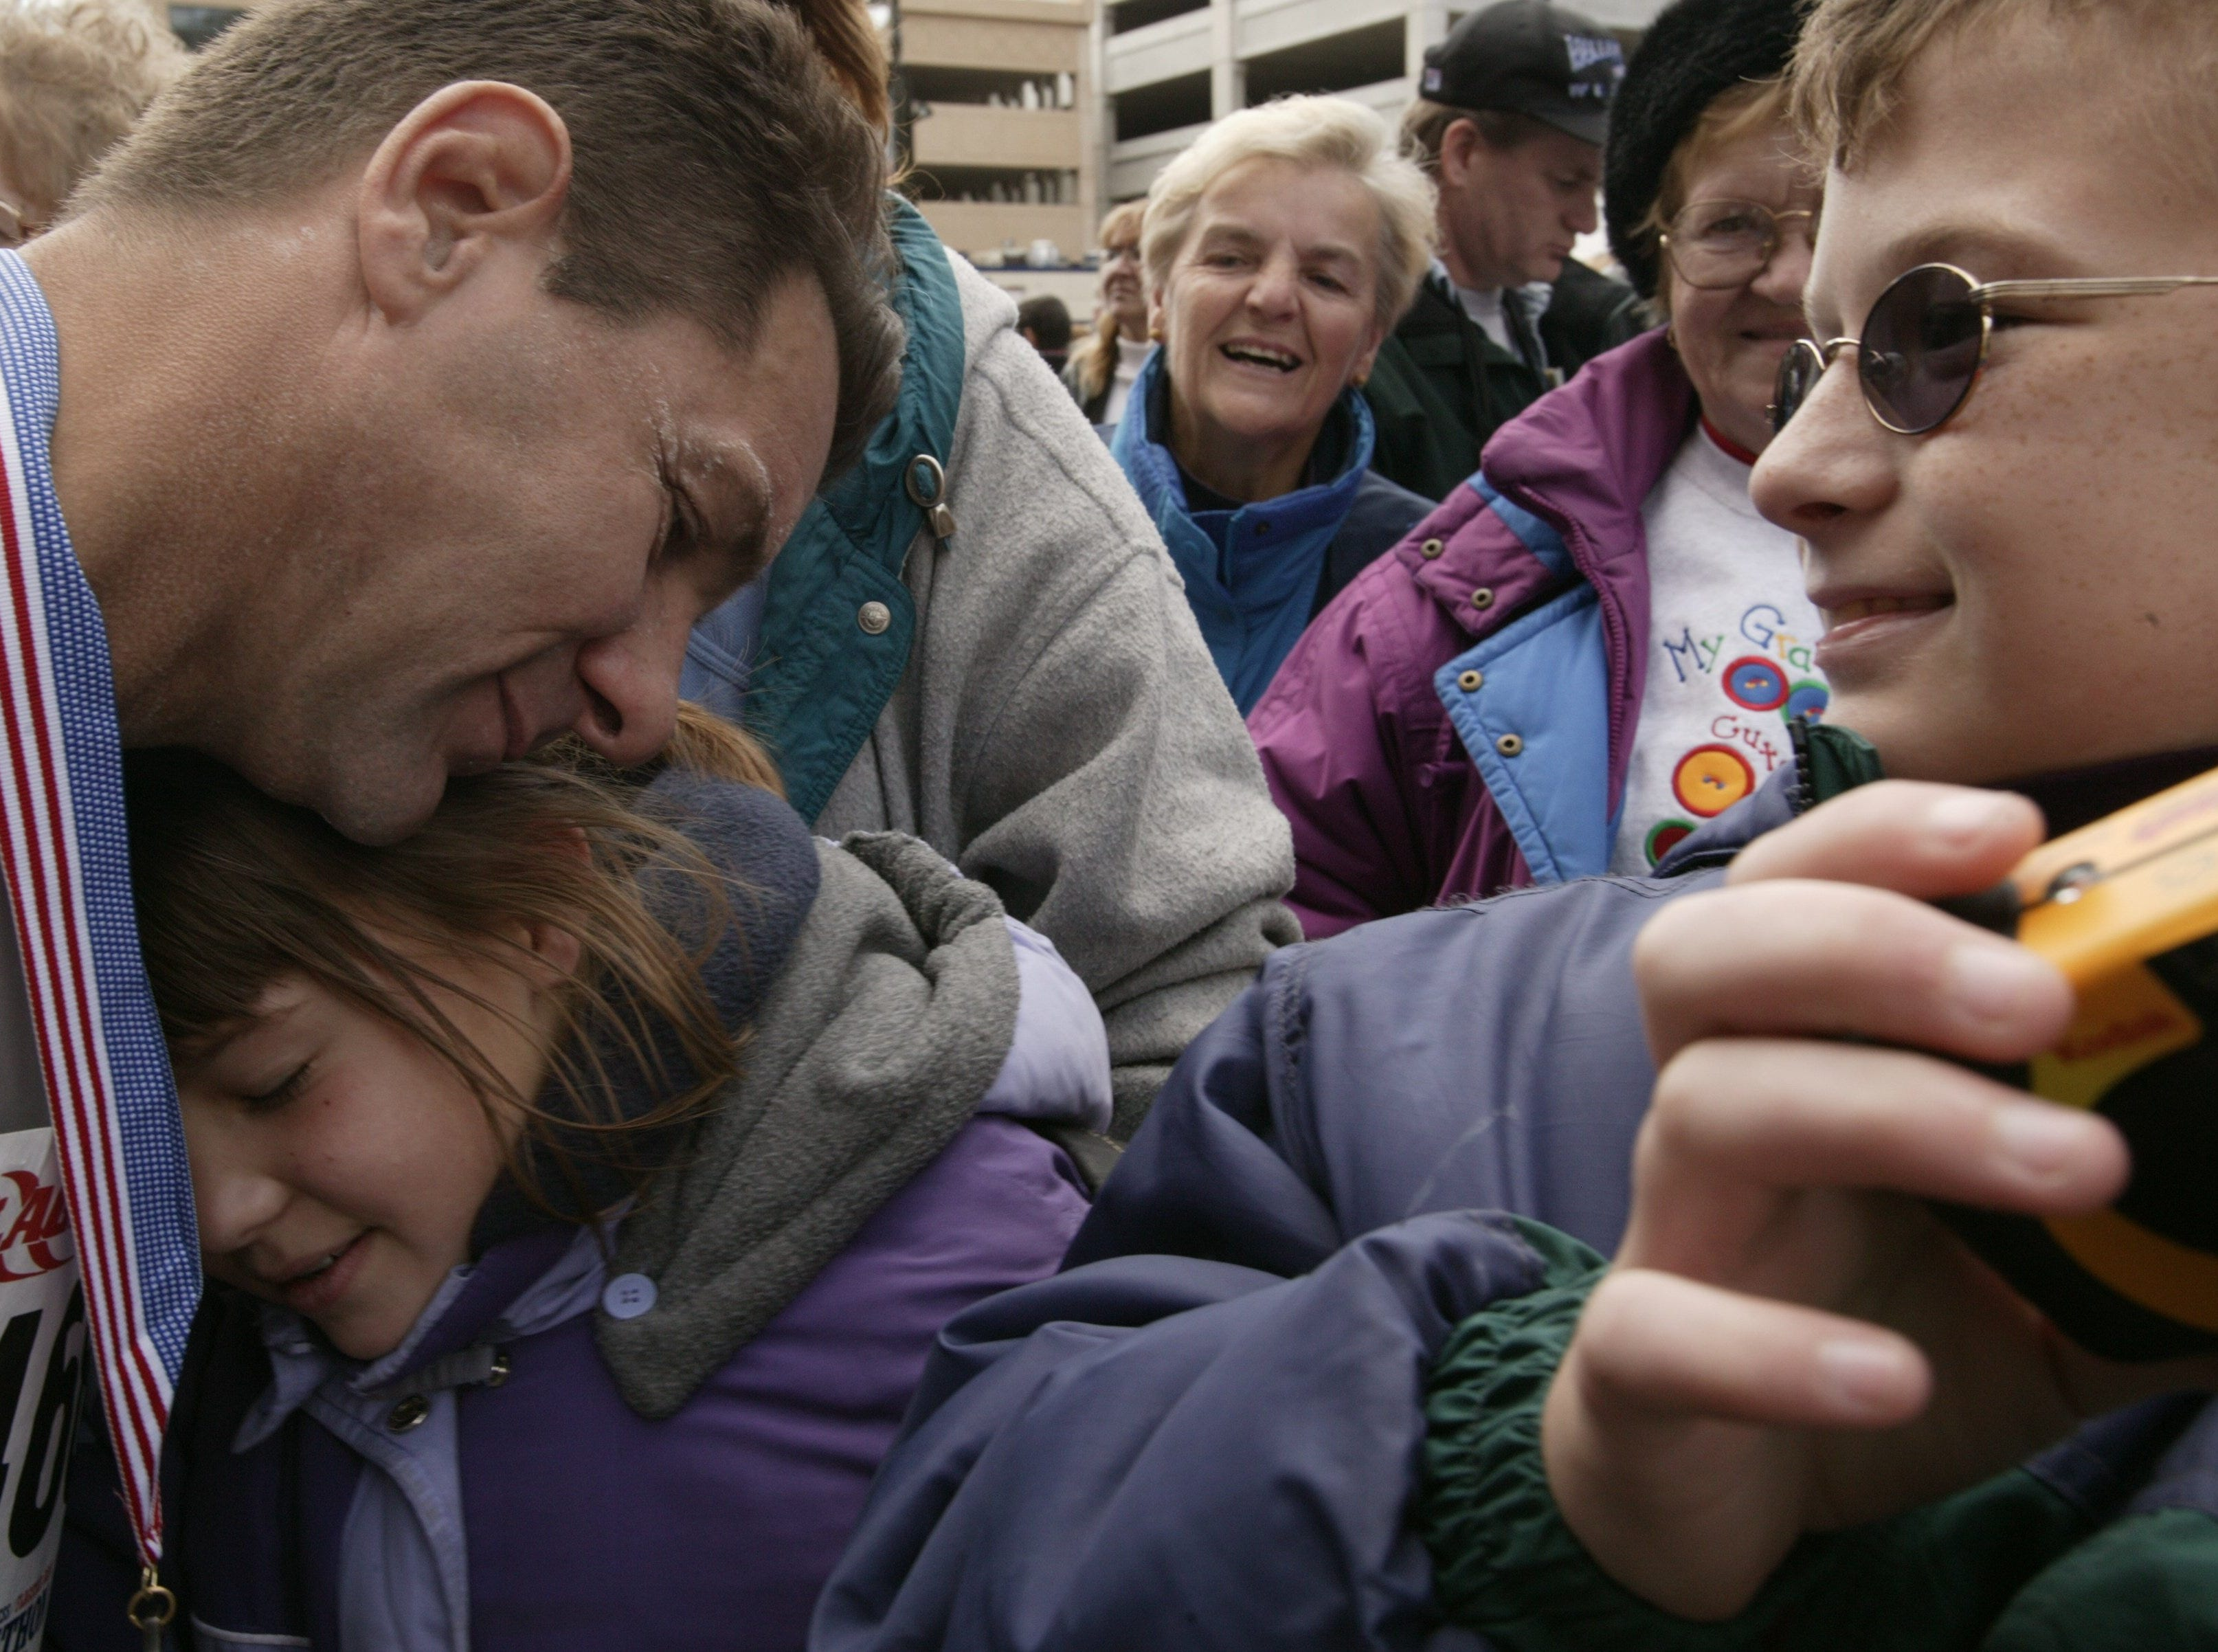 Marathon runner Lenny Olechiw of St. Clair Shores, 48, left, is congratulated for finishing his fourth marathon by his daughter Diana, 9, center, as his son Charles, 12, right, looks on outside of Ford Field in Detroit on Sunday, October 5, 2003.